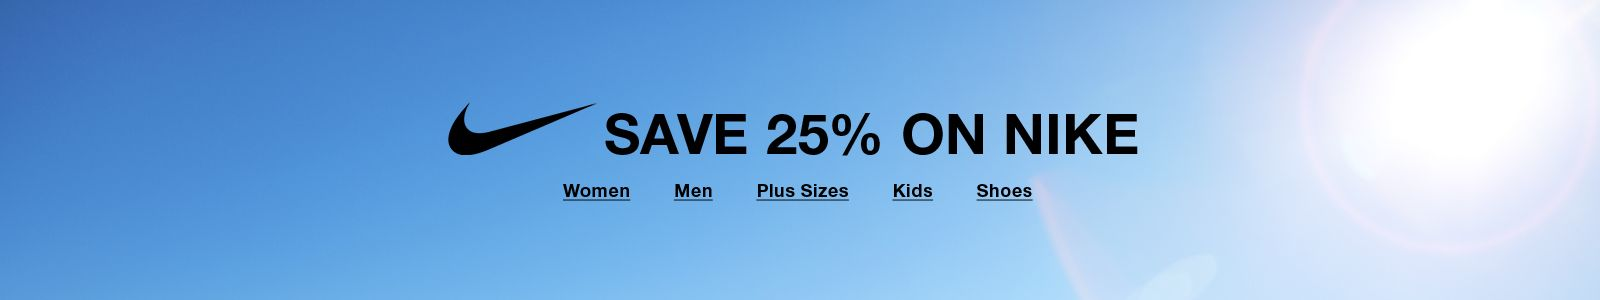 Save 25 percent on Nike, Women, Men, Plus Sizes, Kids, Shoes